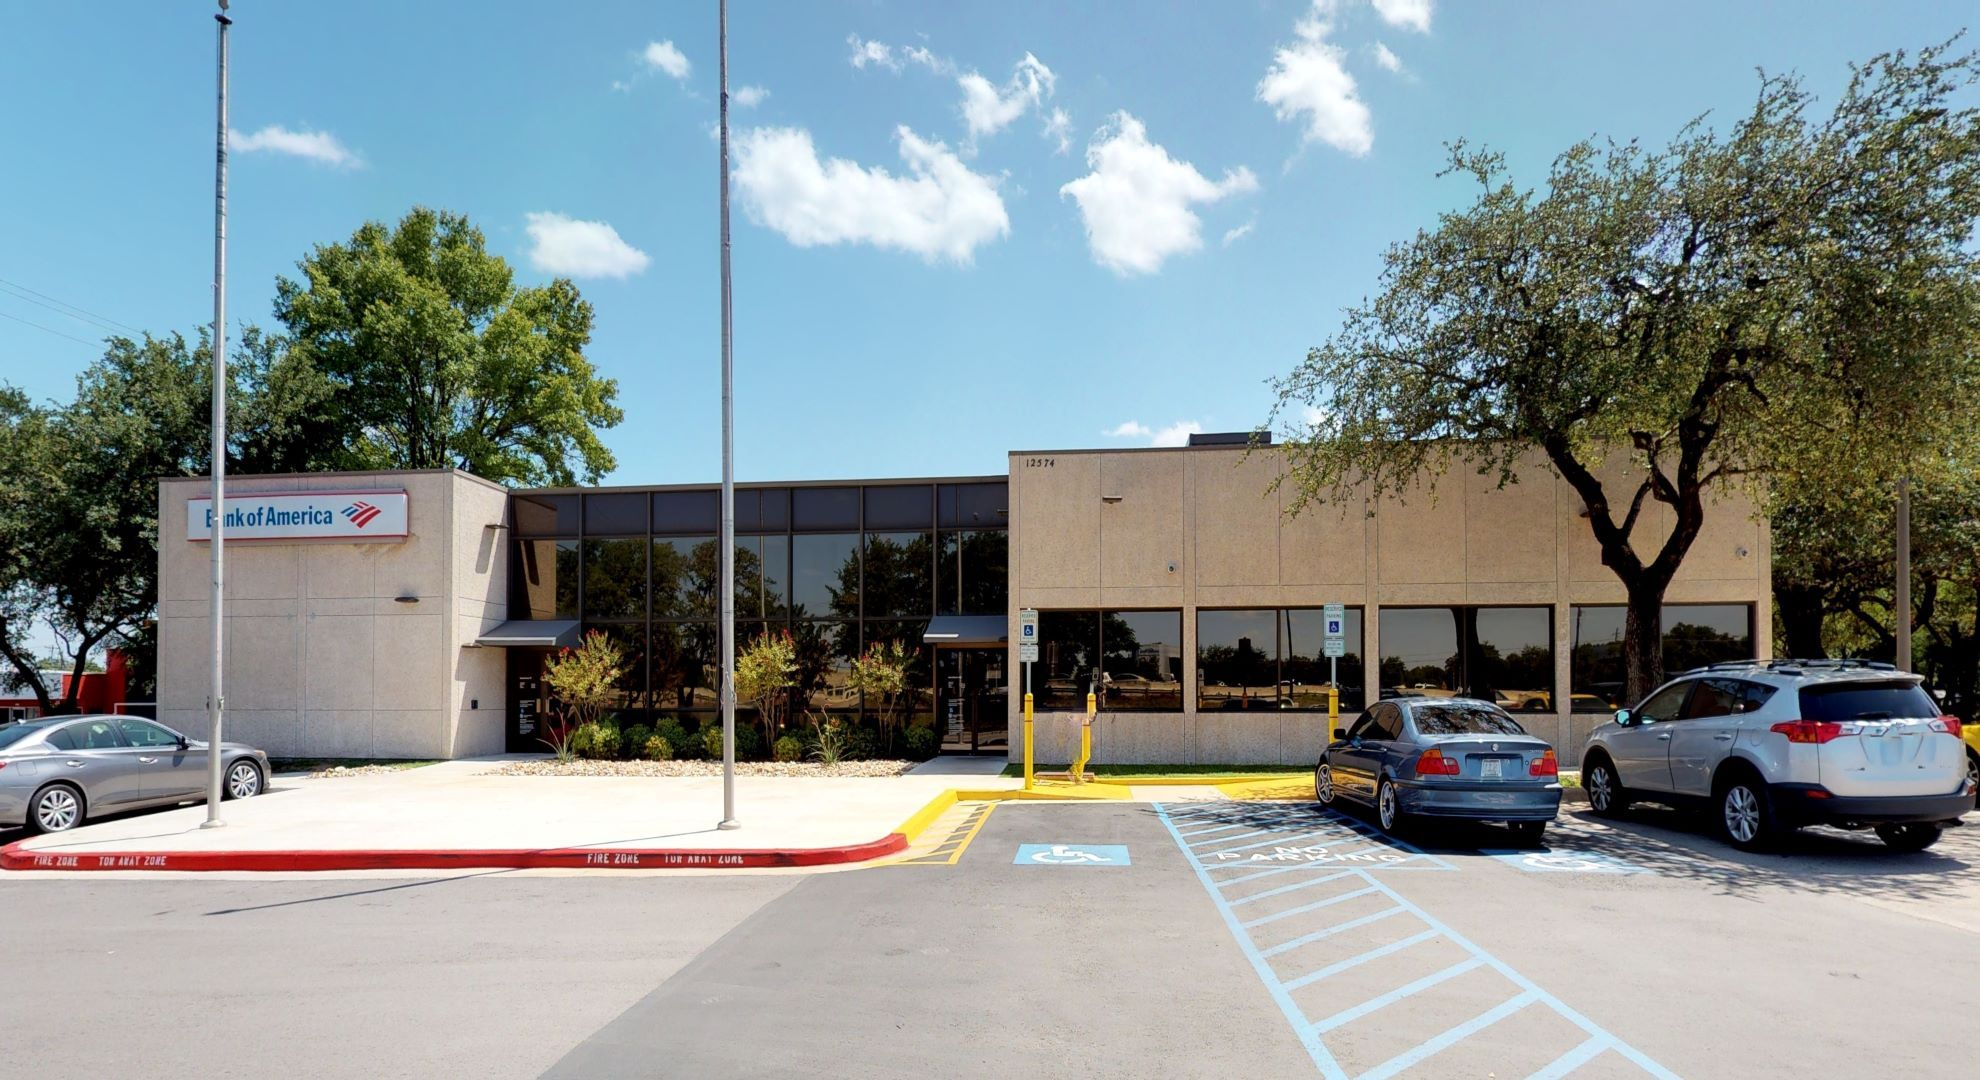 Bank of America financial center with drive-thru ATM | 12574 Research Blvd, Austin, TX 78759